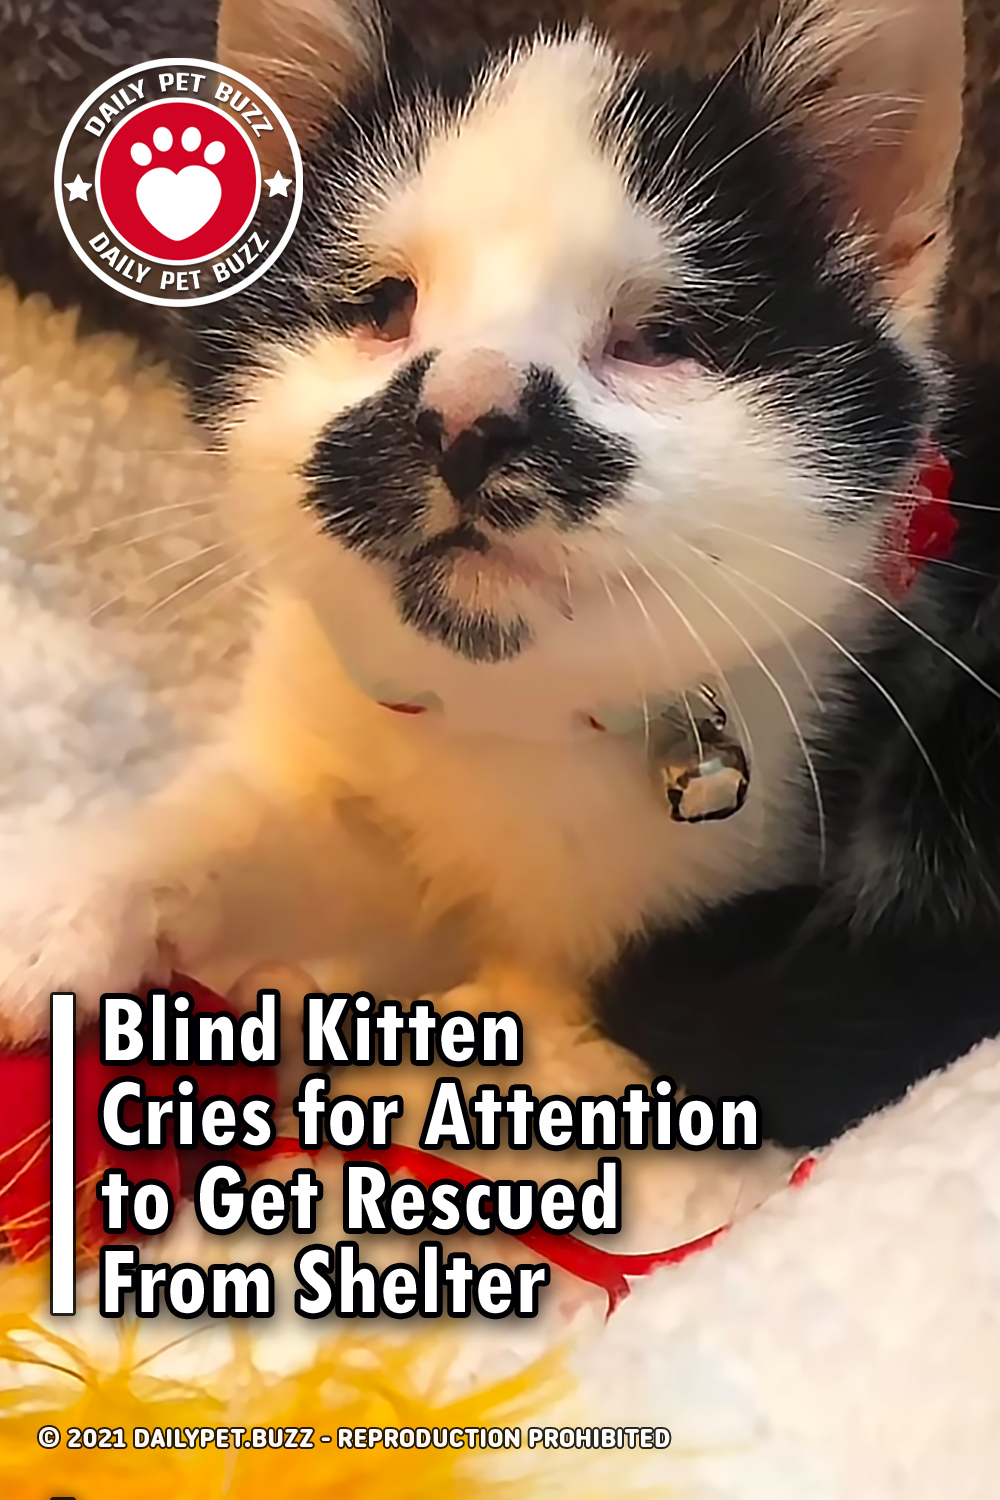 Blind Kitten Cries for Attention to Get Rescued From Shelter